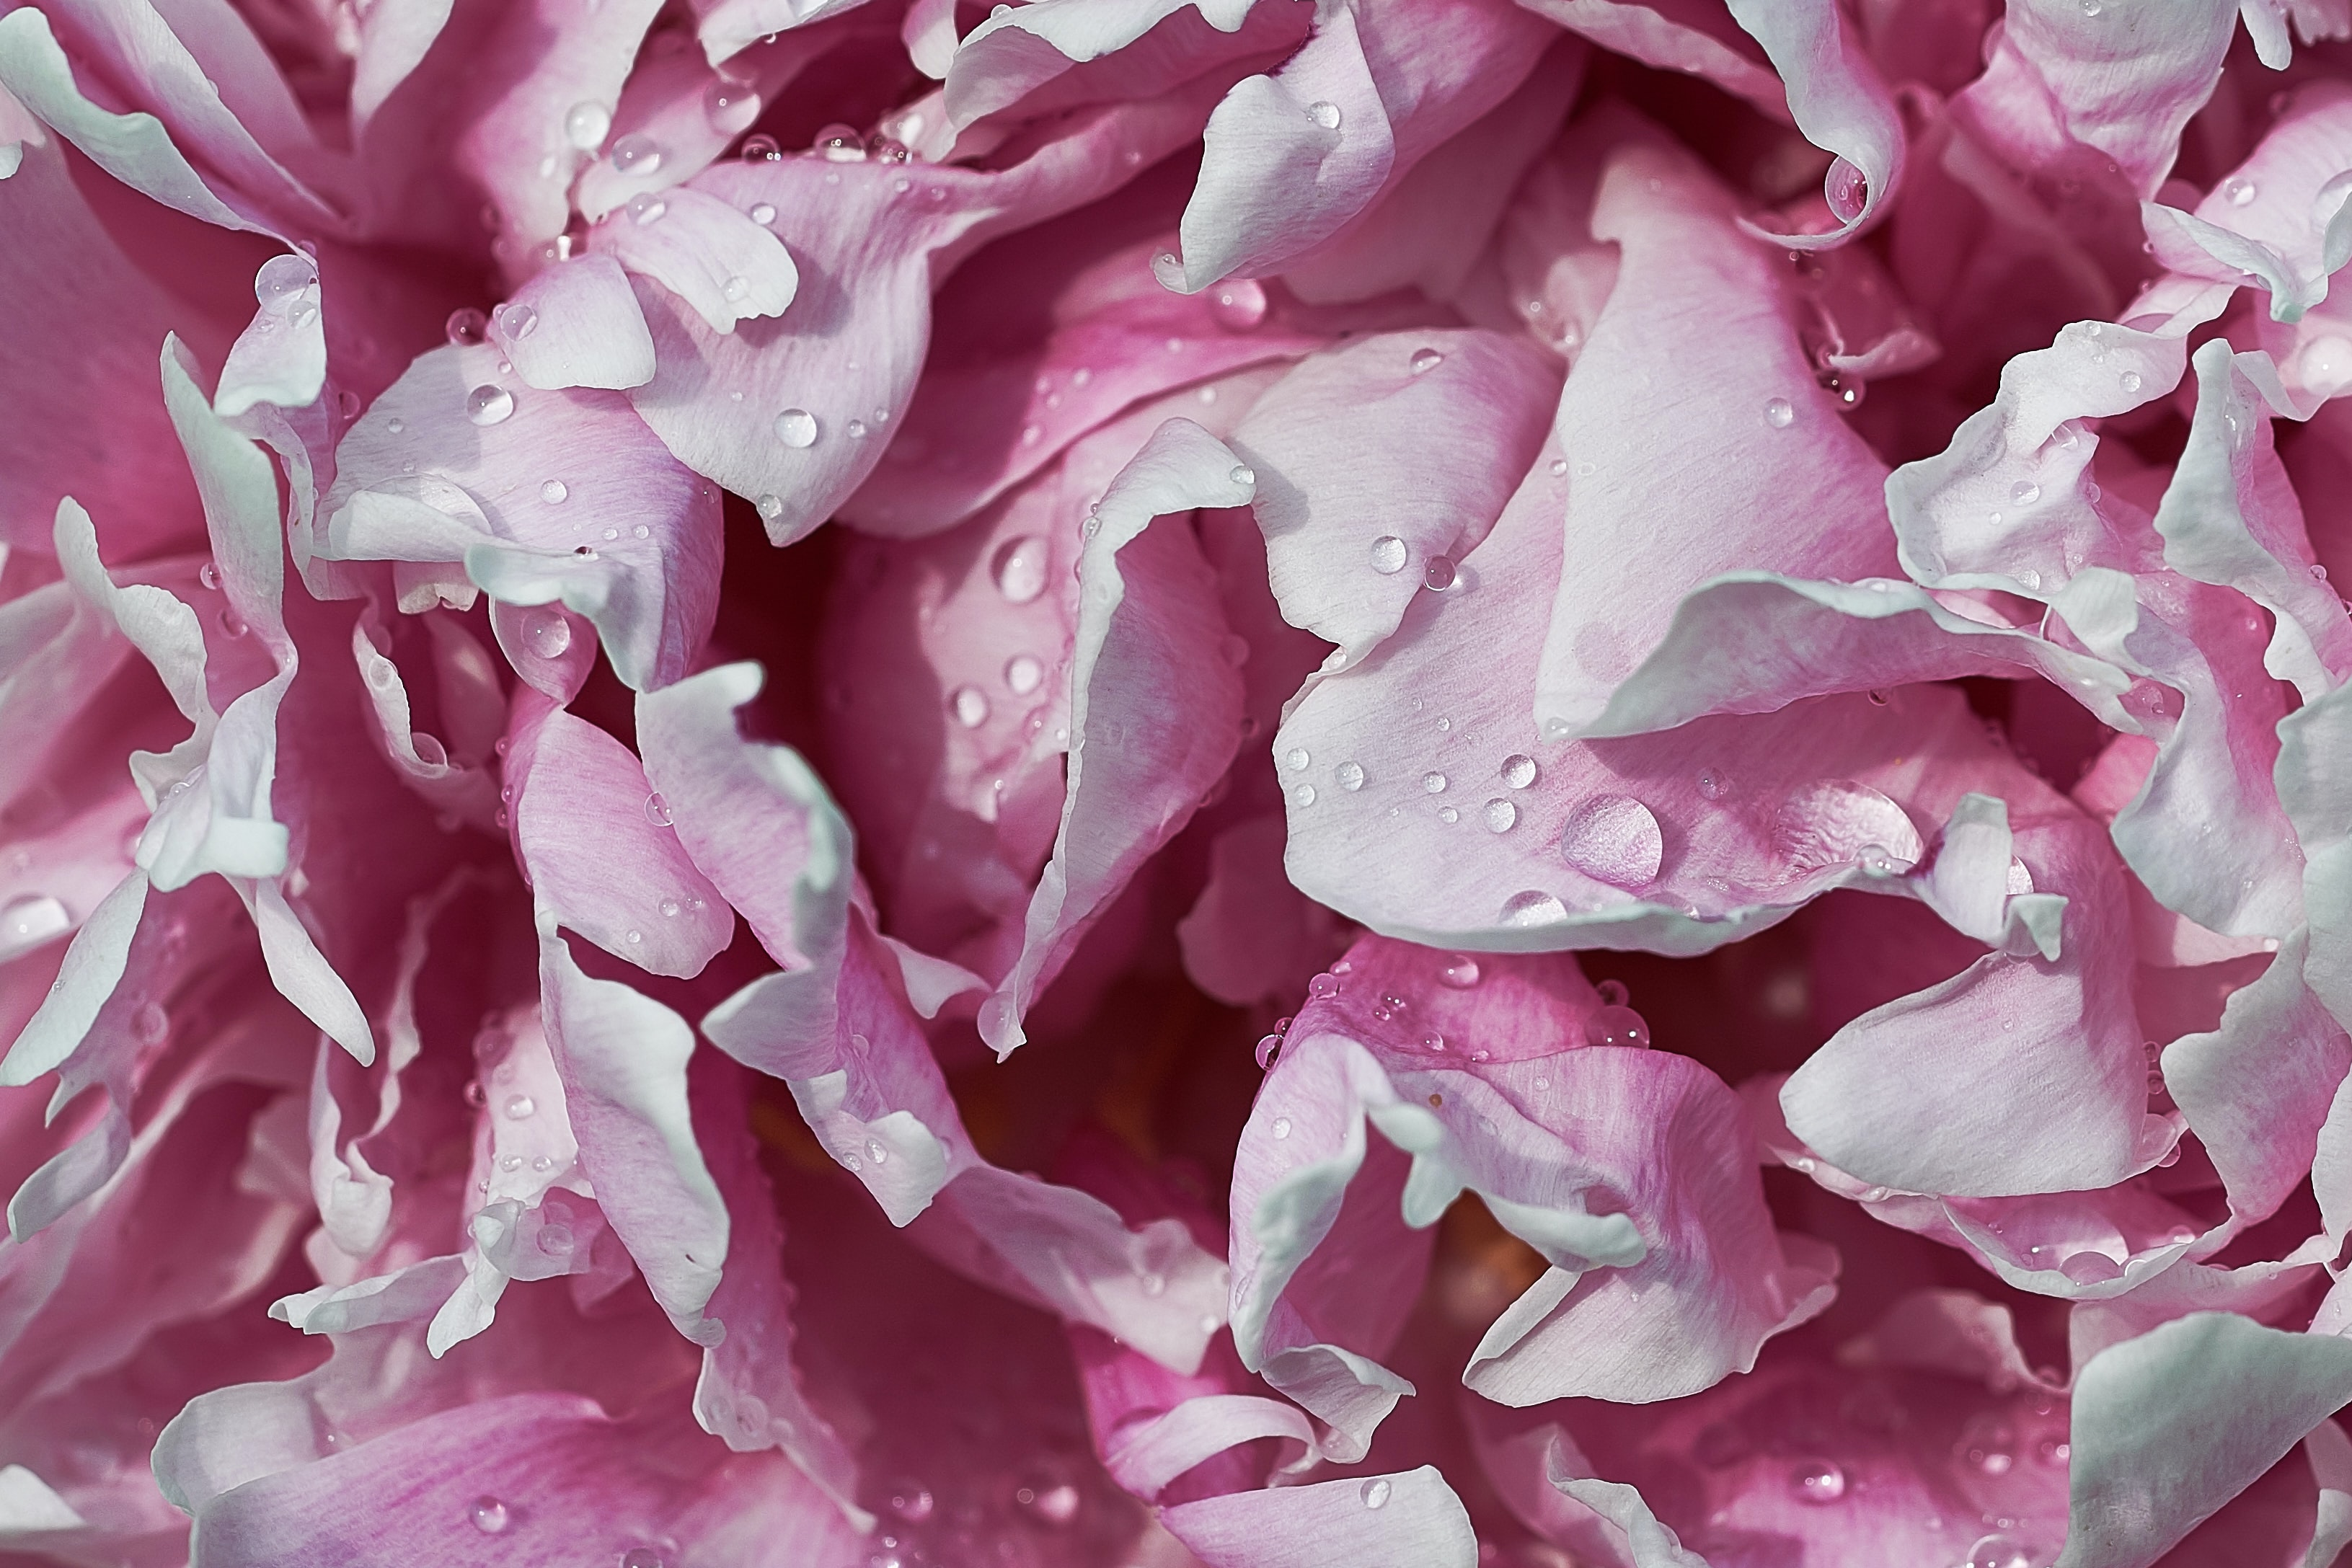 bunch of pink flower petals